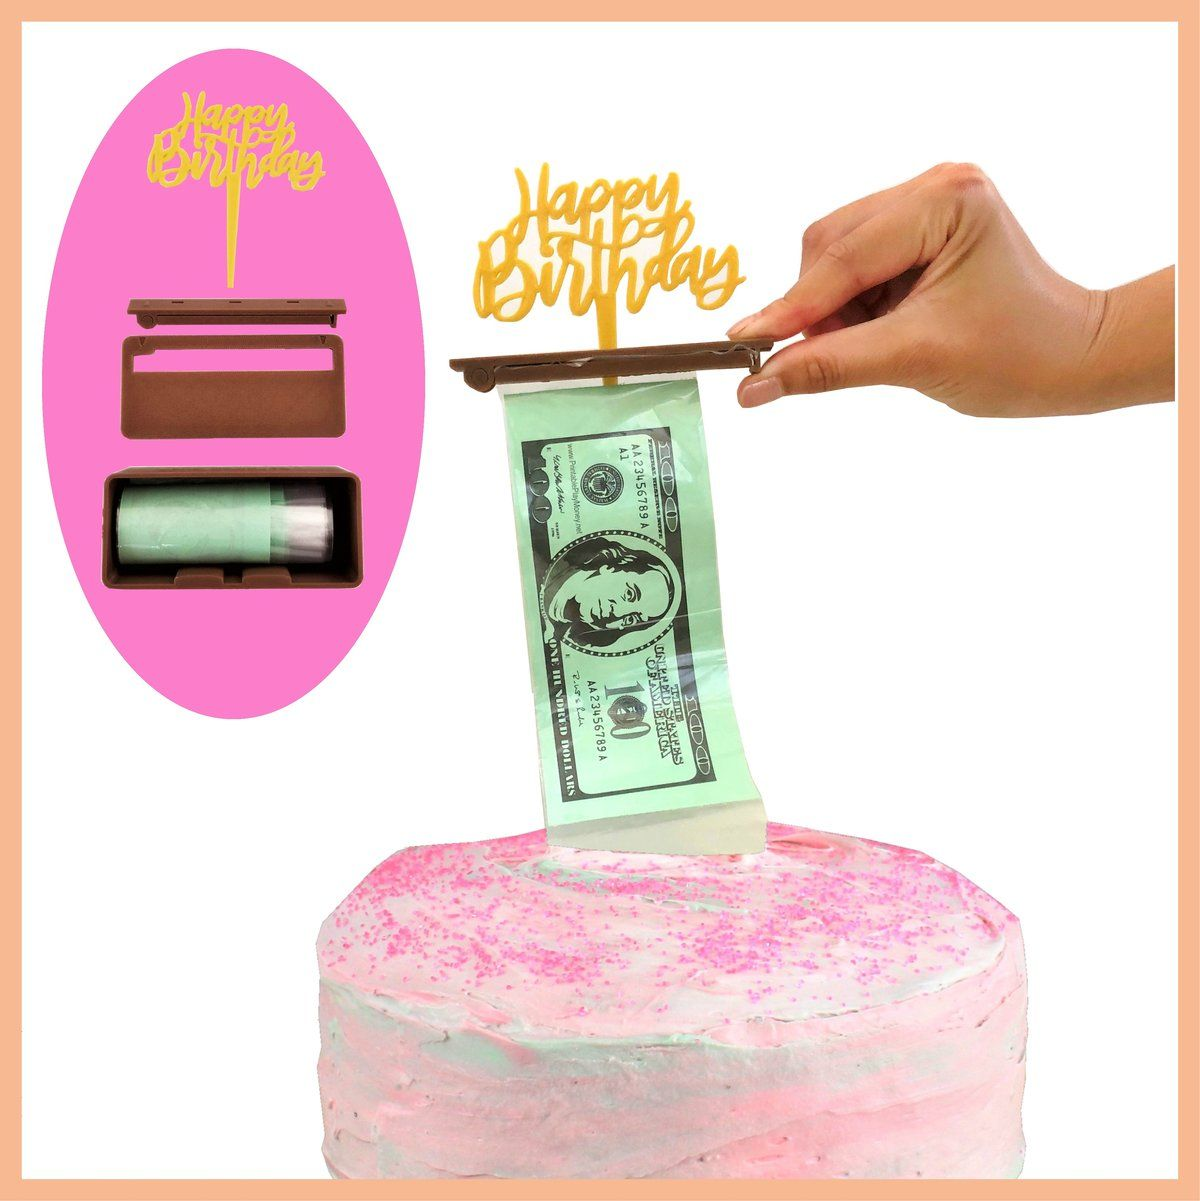 Combine a cake and money with a money cake dispenser box